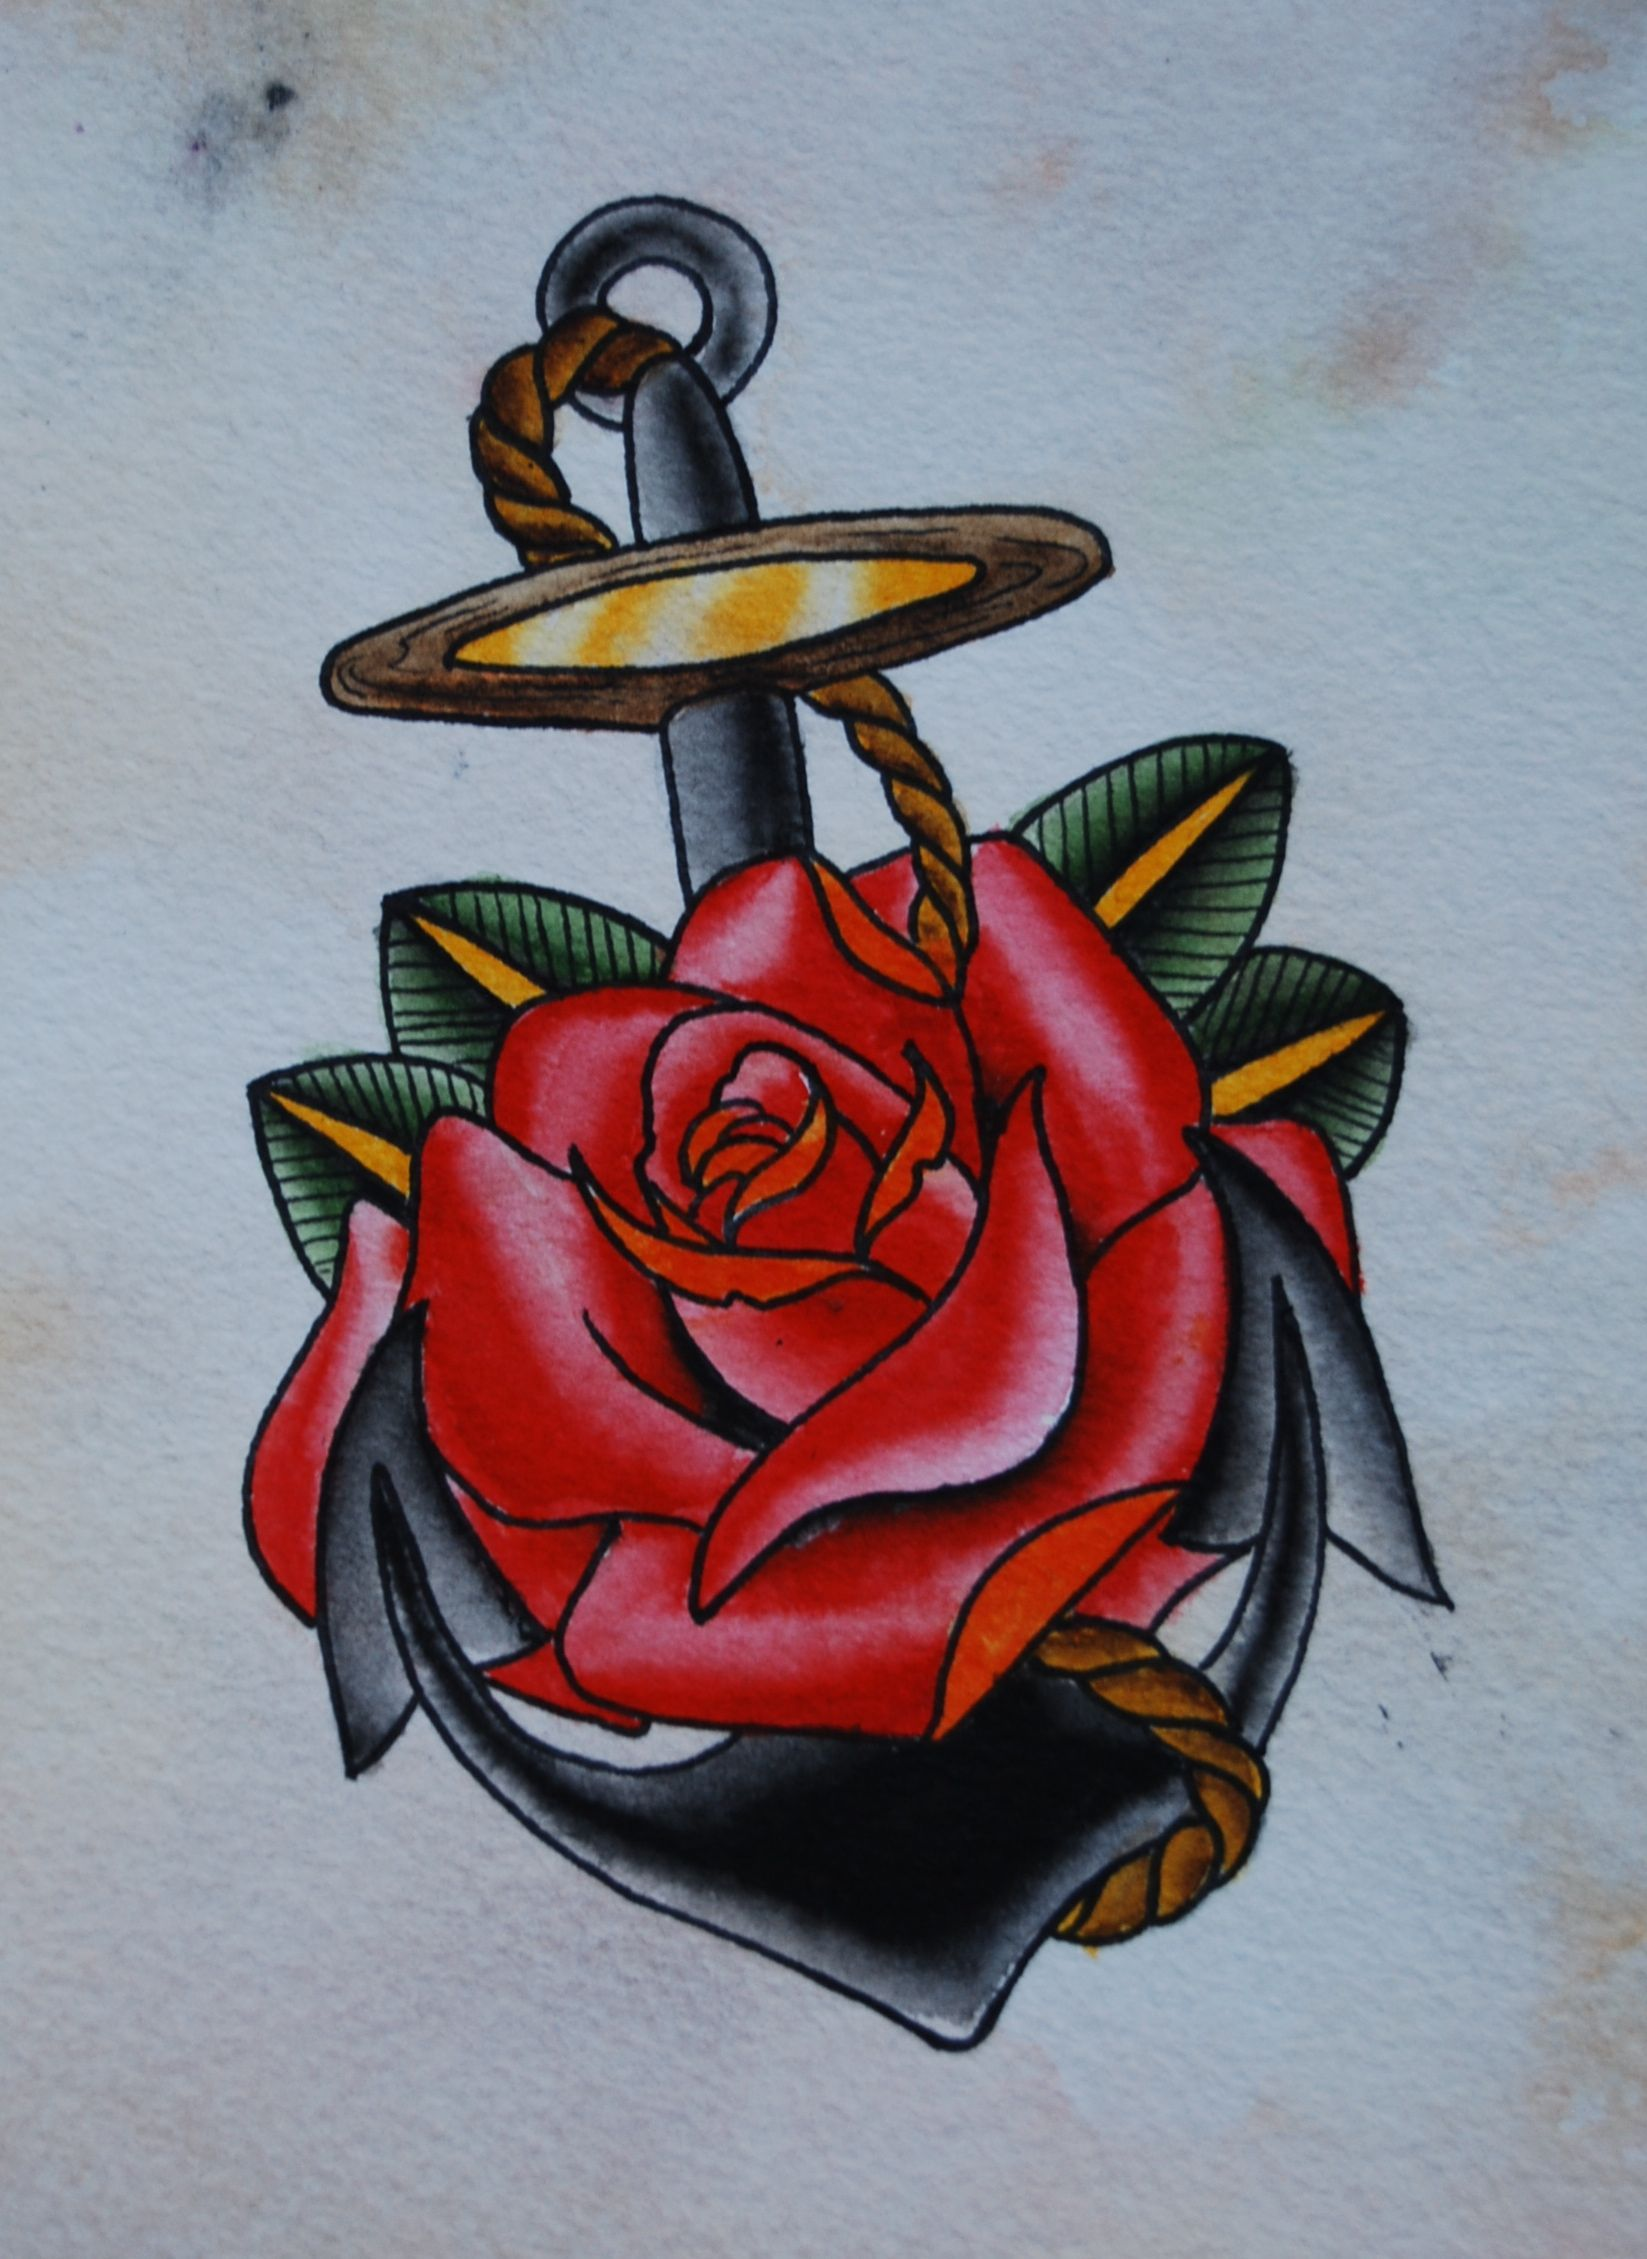 Pin By Ana Marie On Tatoo In 2020 Anchor Tattoo Design Red Rose Tattoo Rose Tattoos For Men